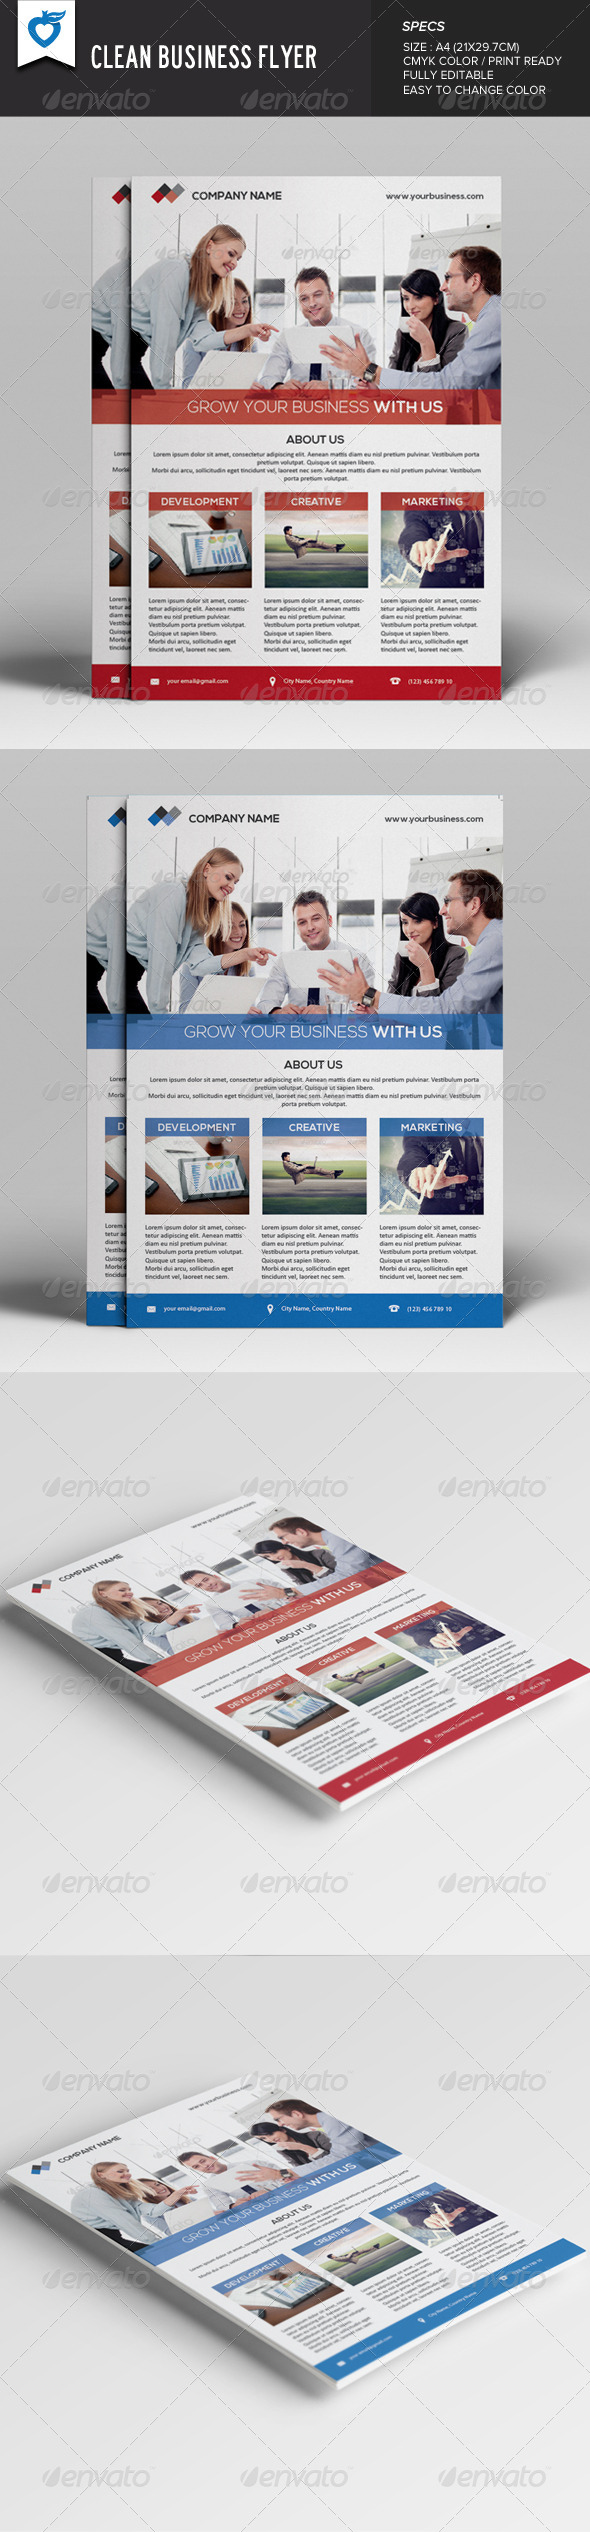 GraphicRiver Clean Business Flyer 7934212